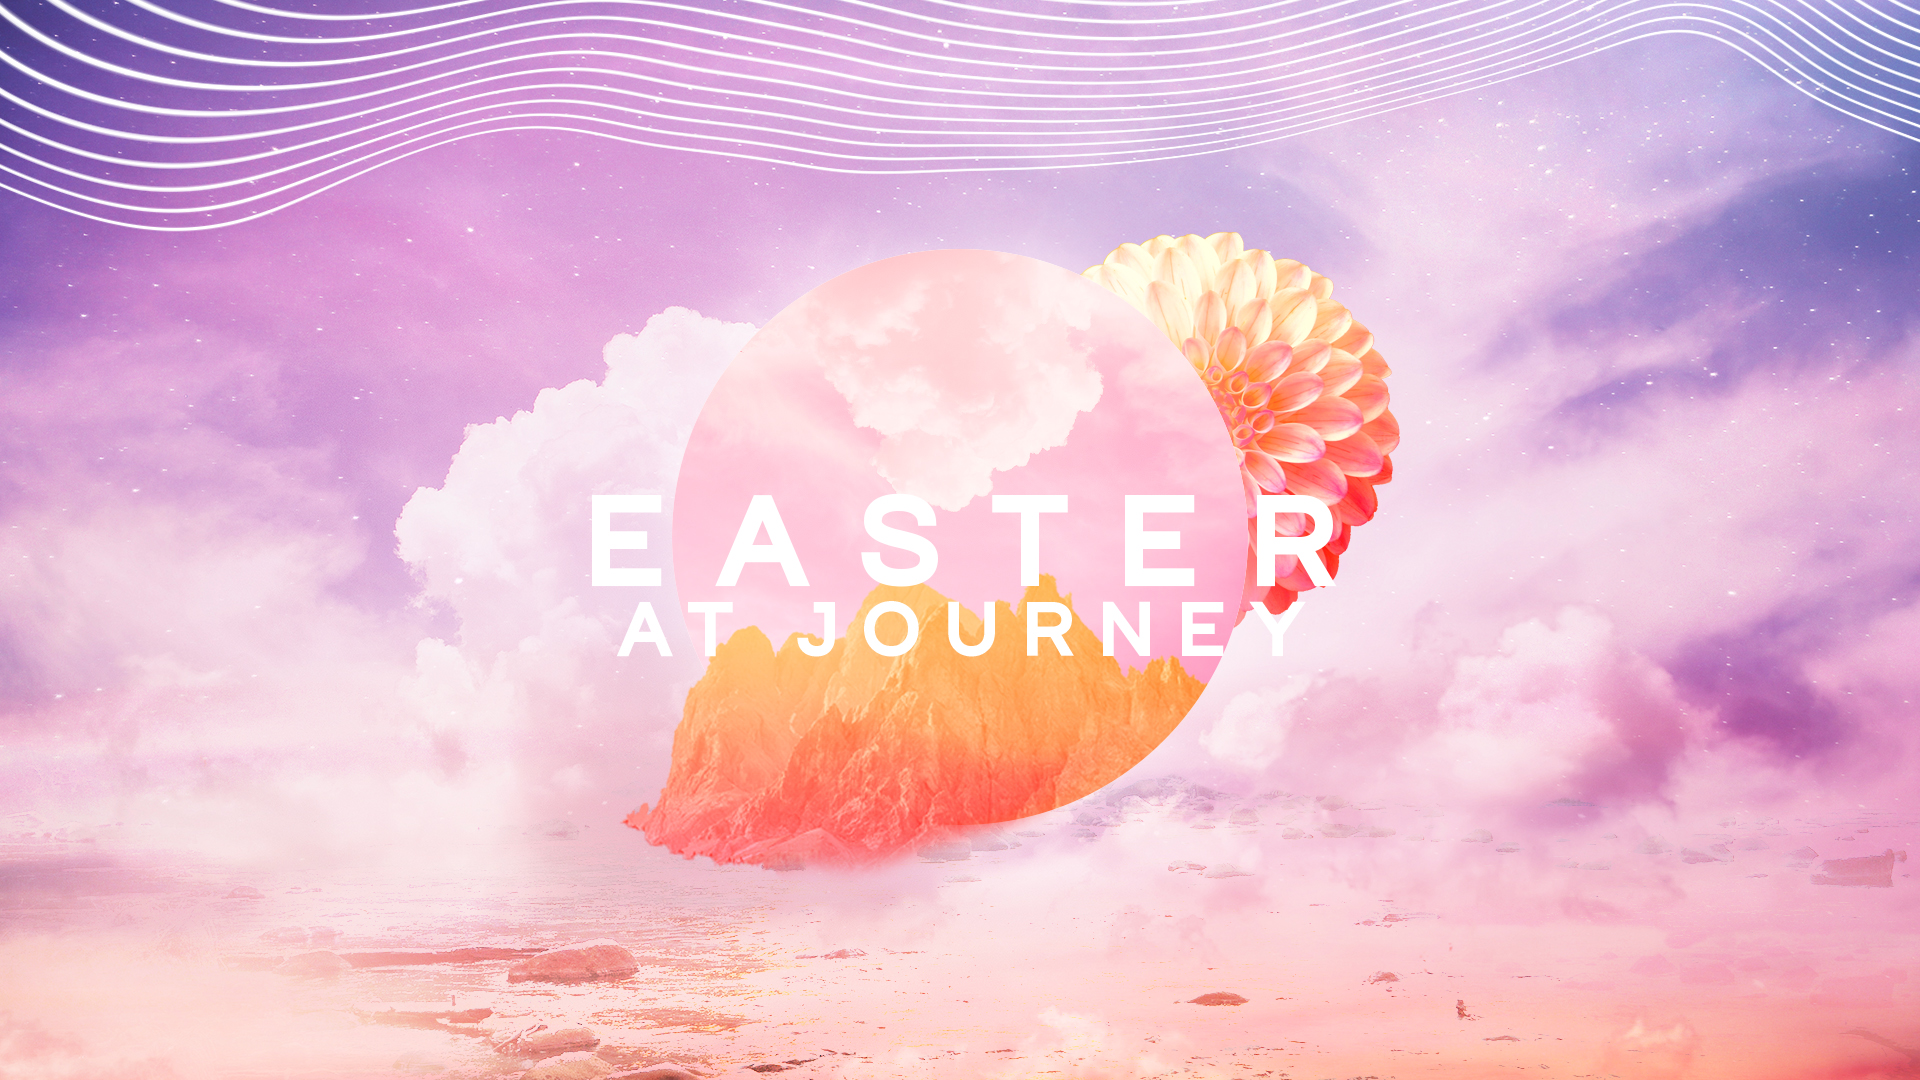 Easter At Journey 2019